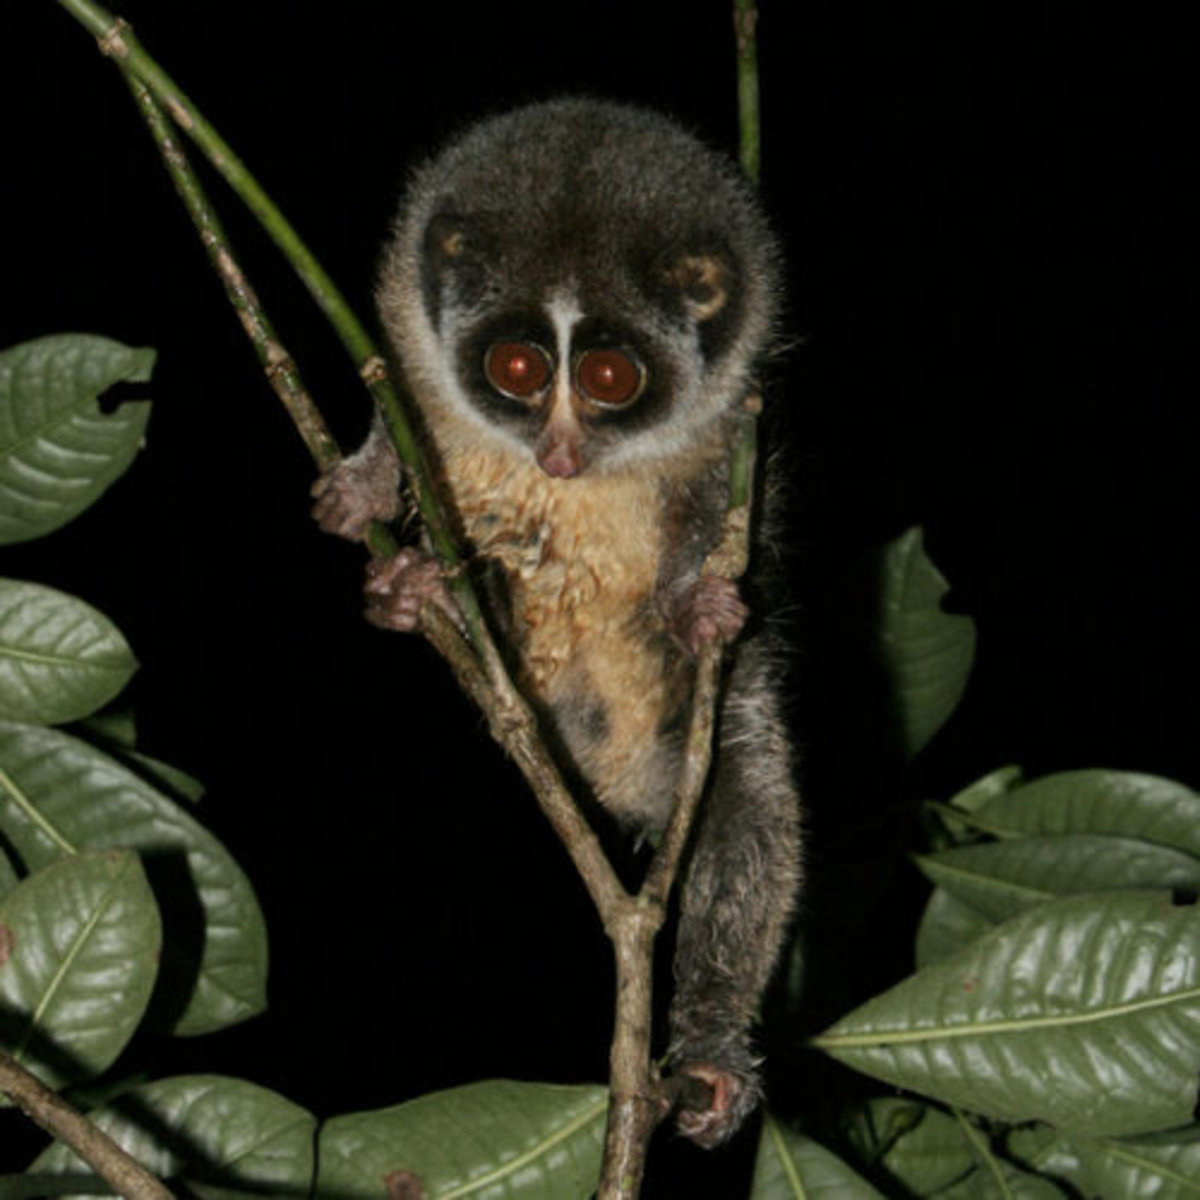 Venomous or Poisonous Mammal? The Loris Uses Venom